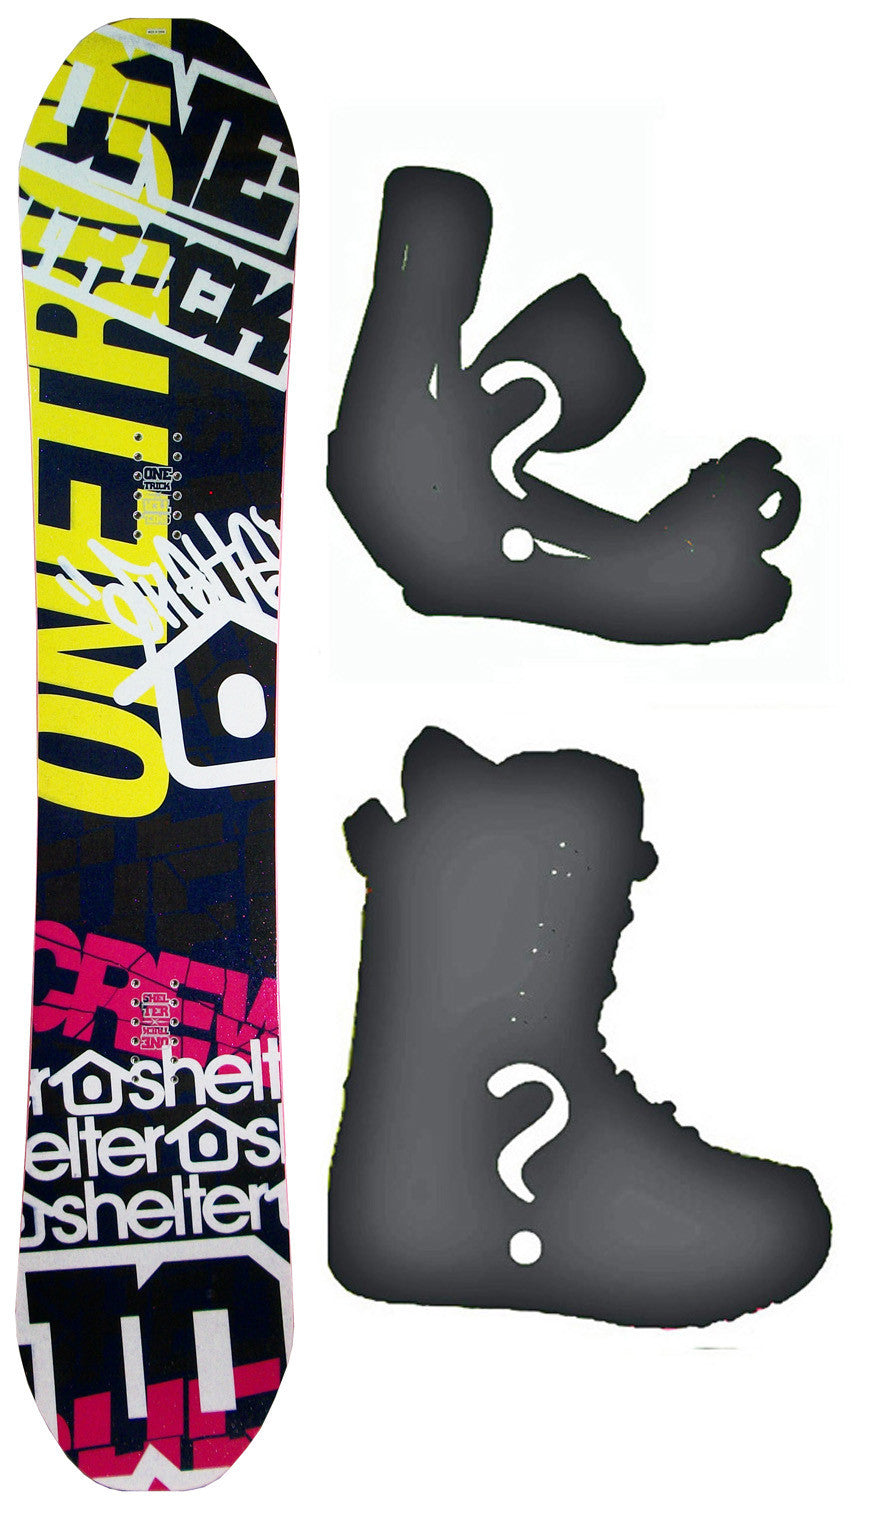 149cm Shelter Crew W-Camber Snowboard, Build a Package with Boots and Bindings